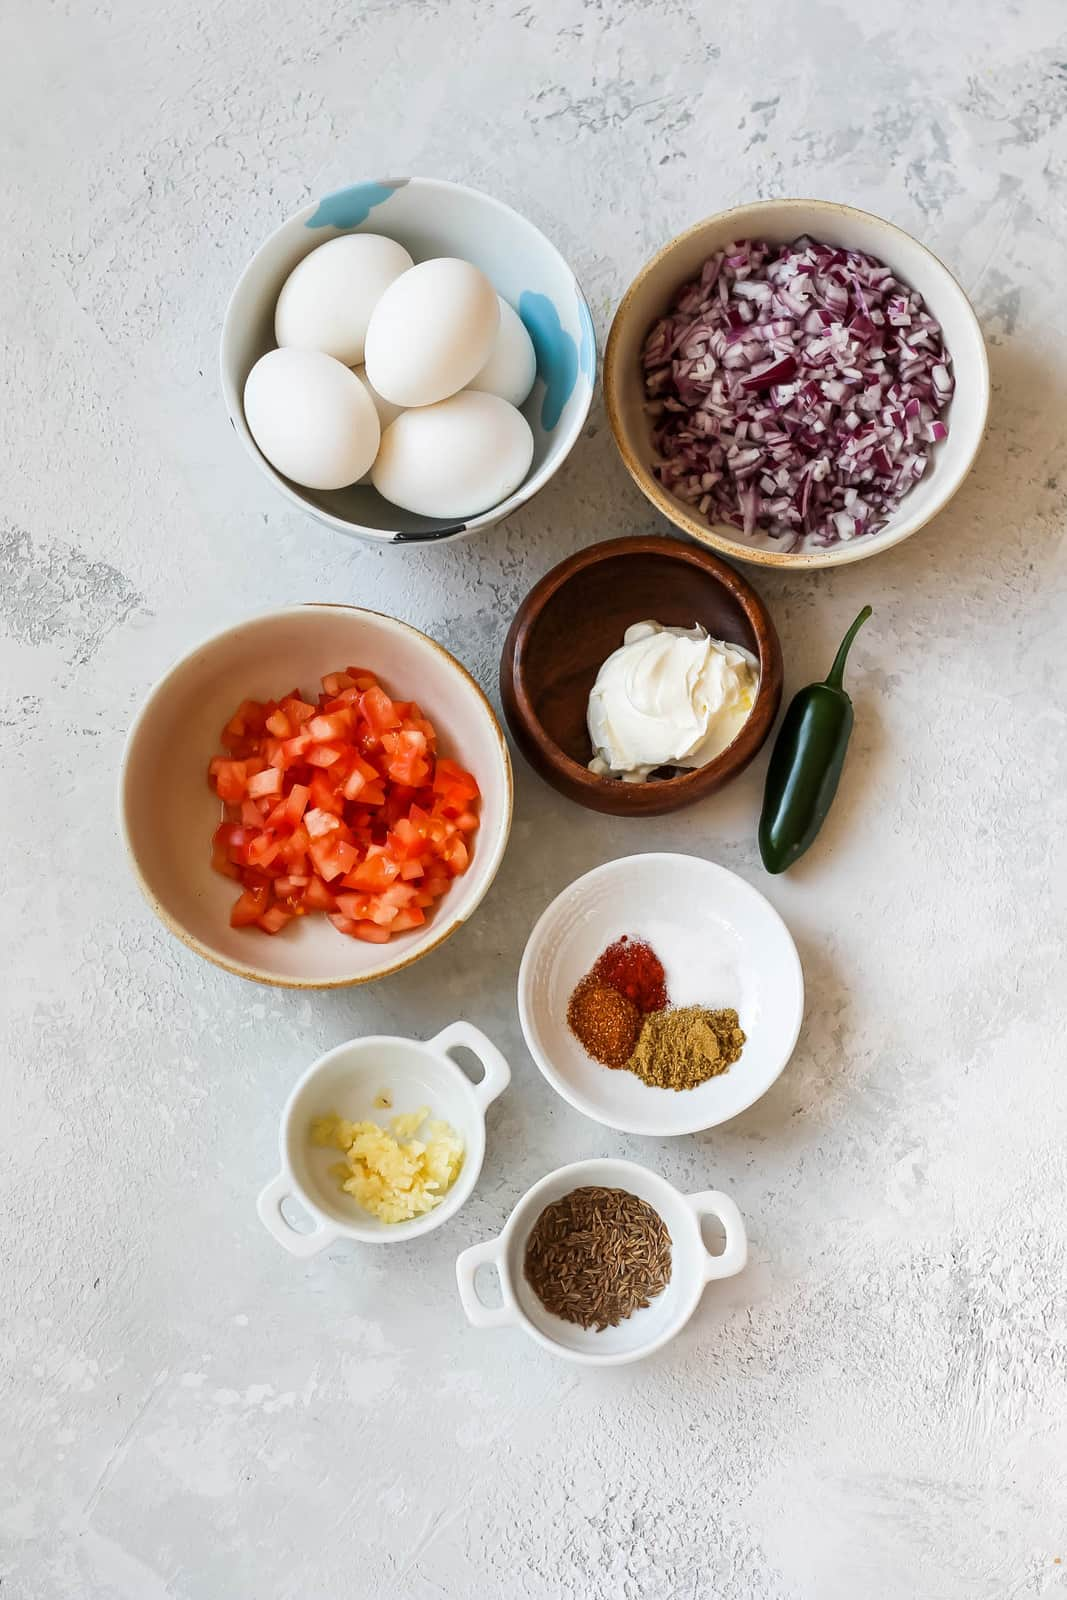 eggs, red onion, yogurt, tomatoes, spices, garlic, and jalapeno on a grey background